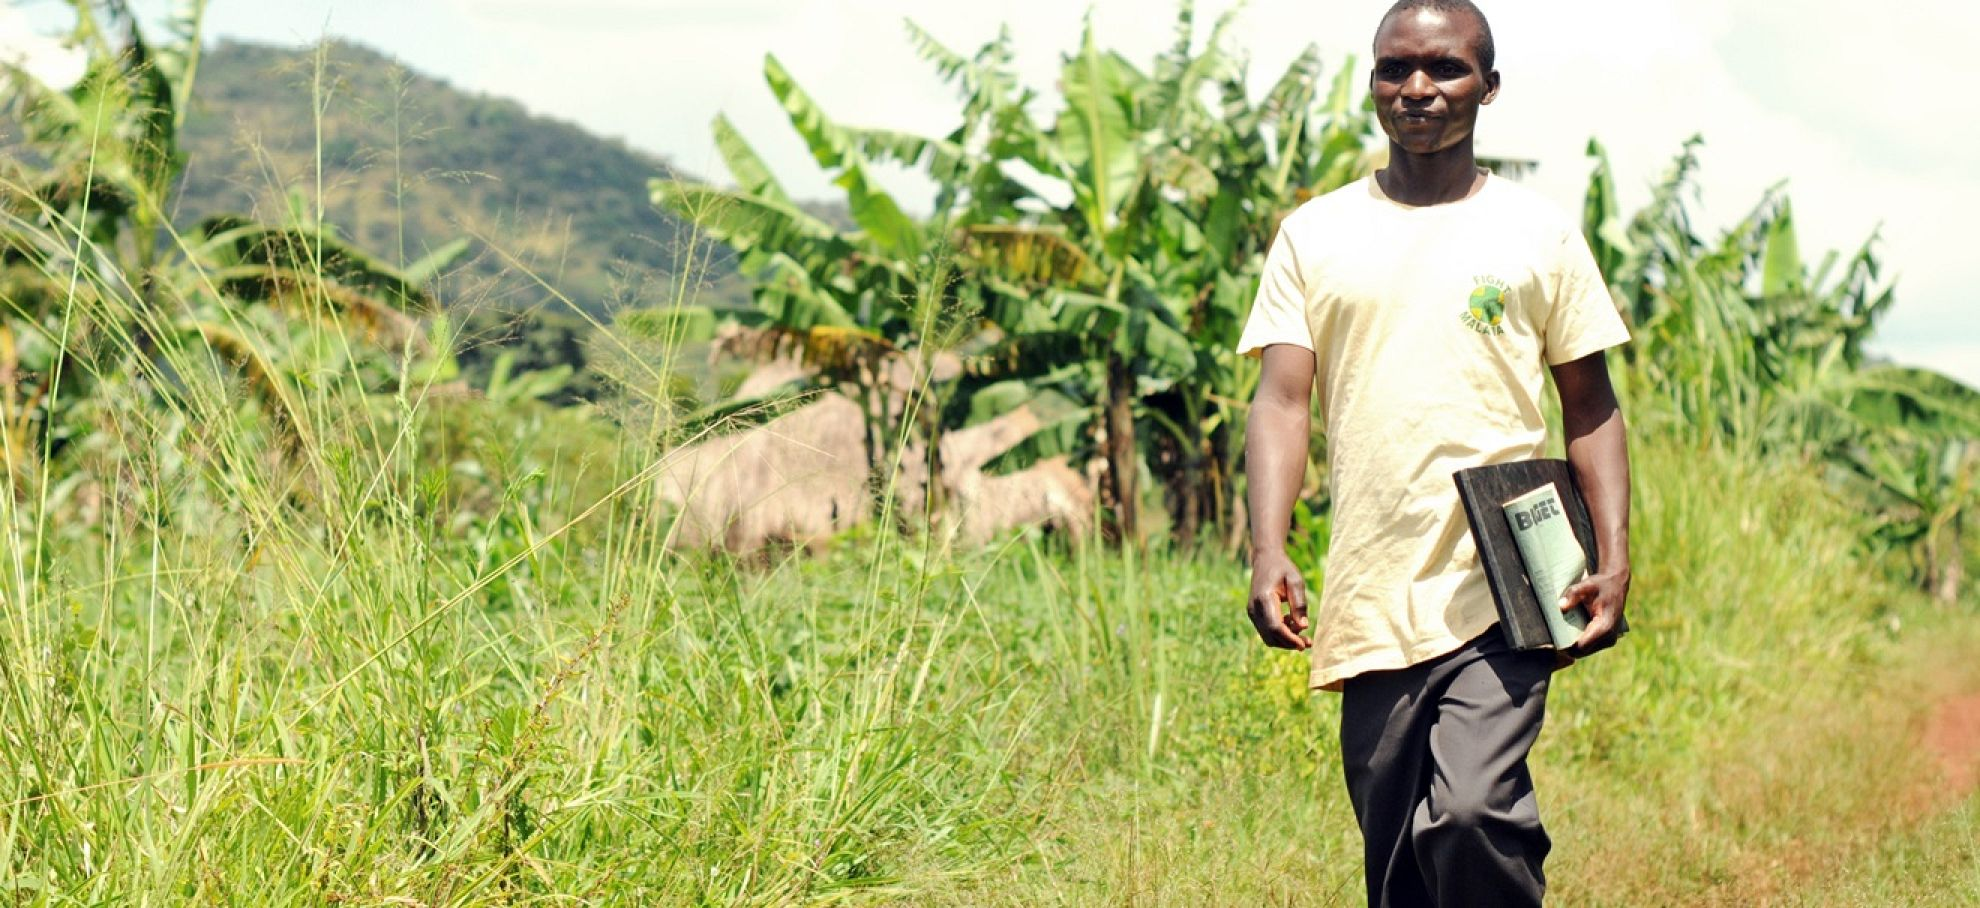 Latest News Help us improve access to healthcare in eastern uganda